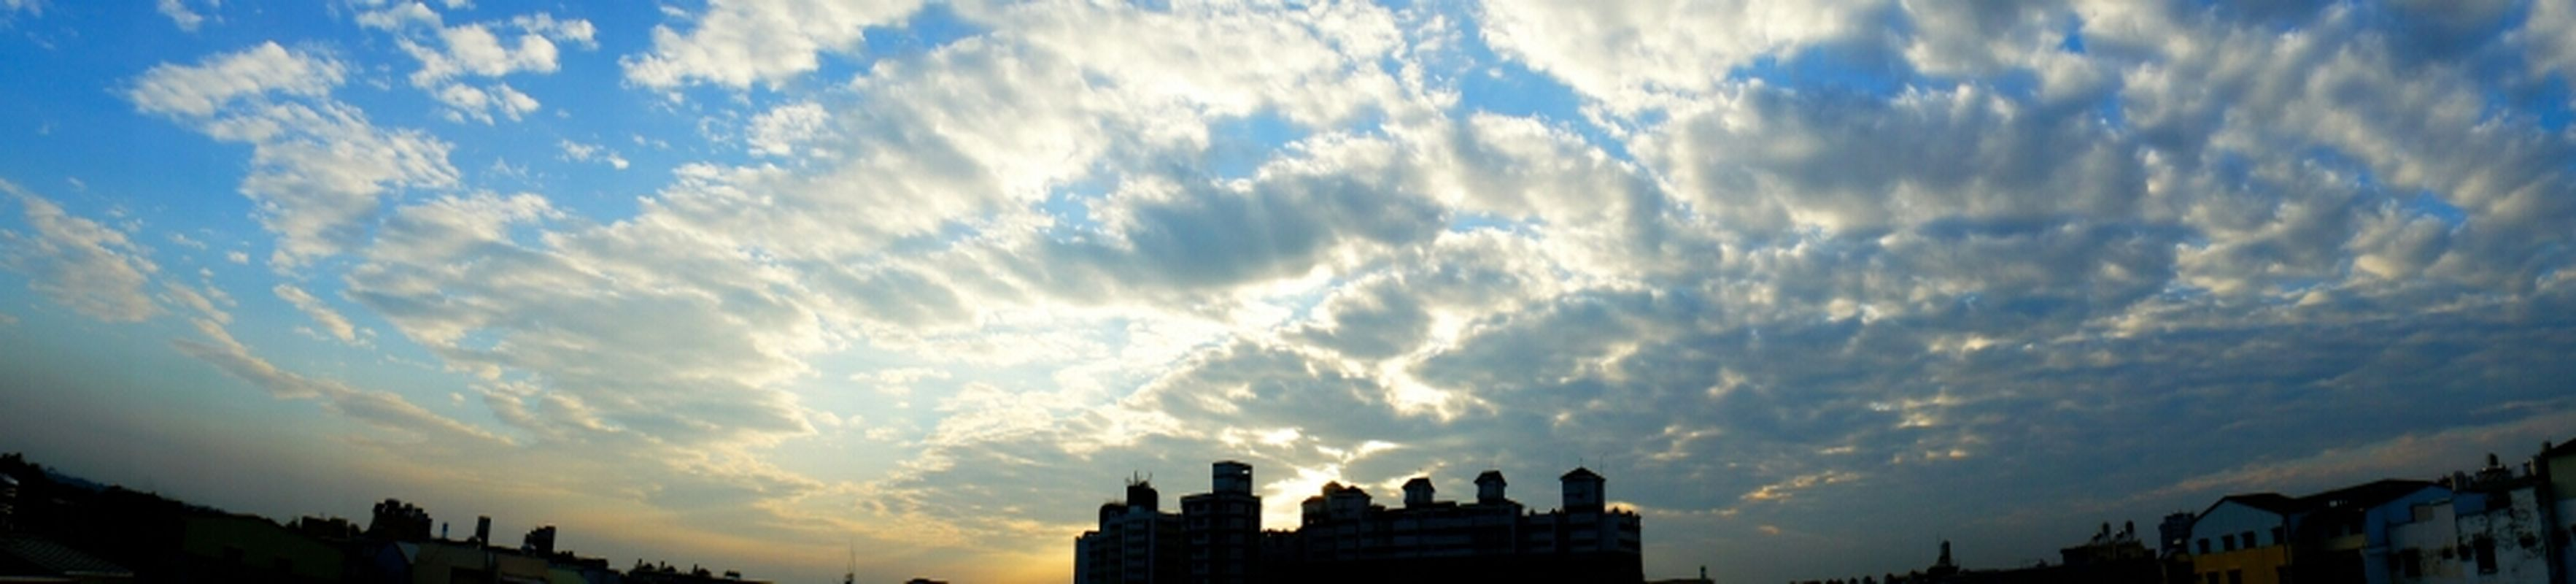 clouds streetphotography sunset sky Enjoying the Sun Enjoying the View Taiwan enjoying life clouds and sky what i saw by SCBeelzebub